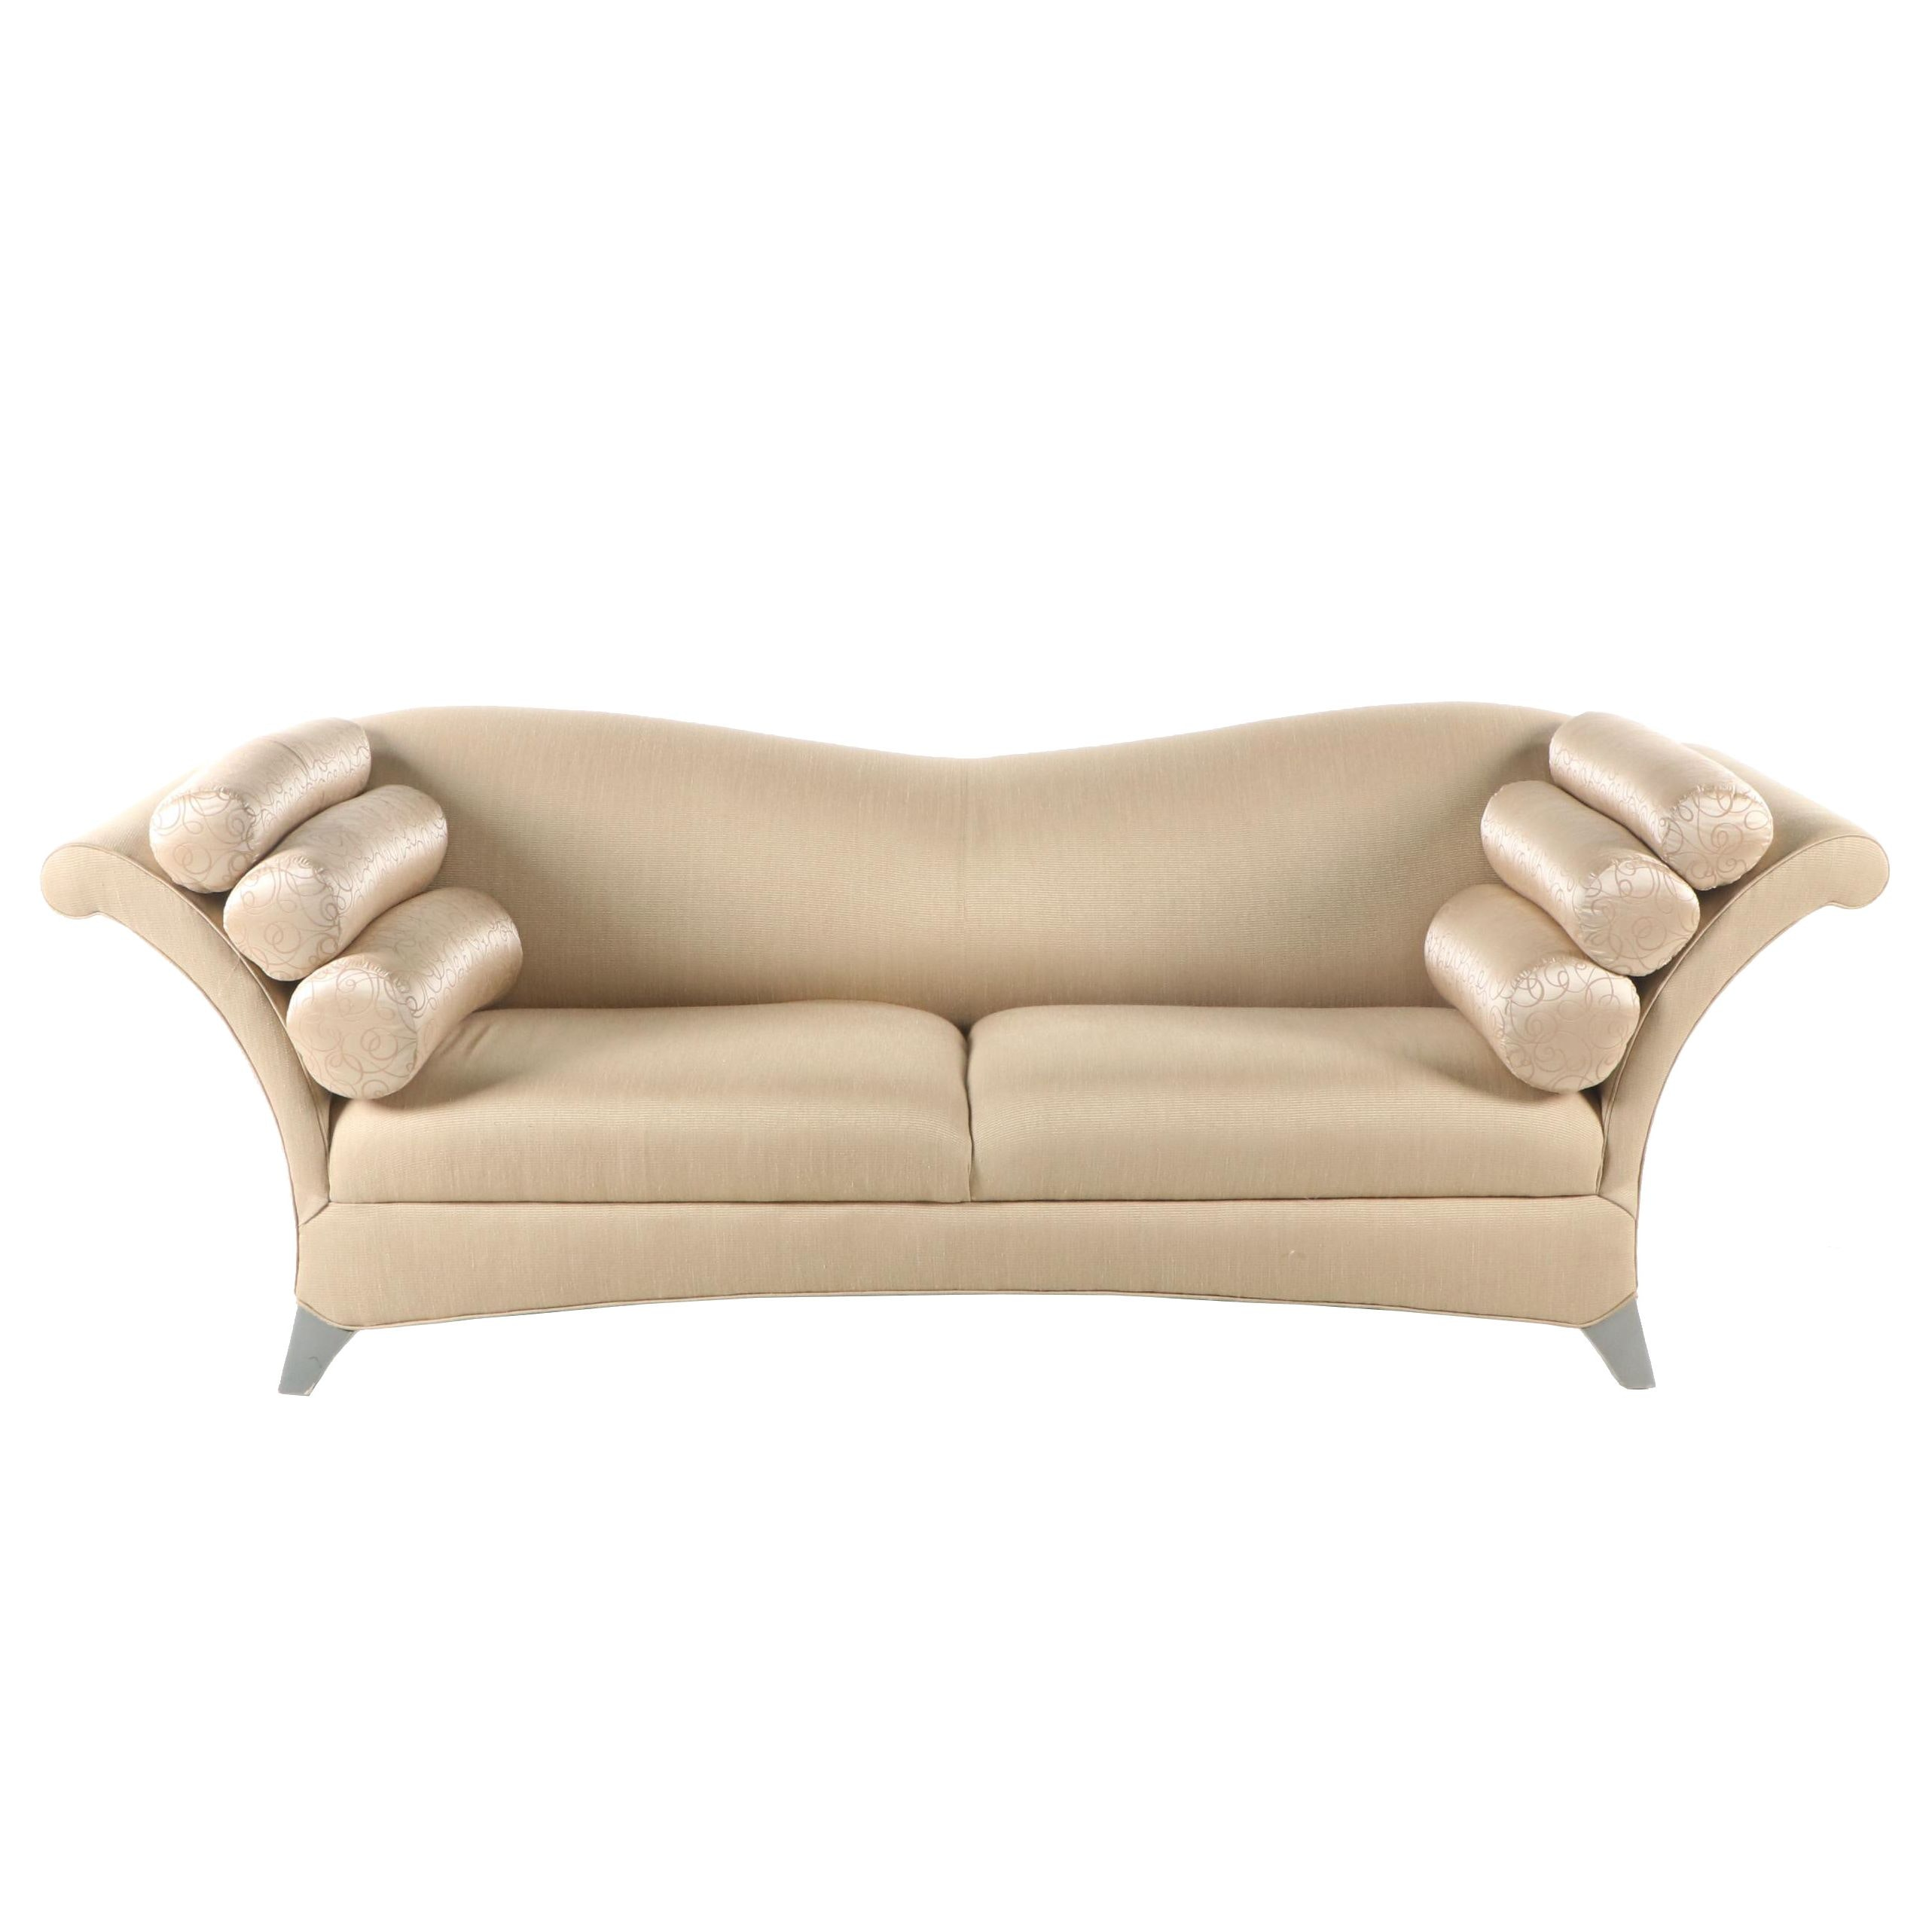 Contemporary Upholstered Sofa